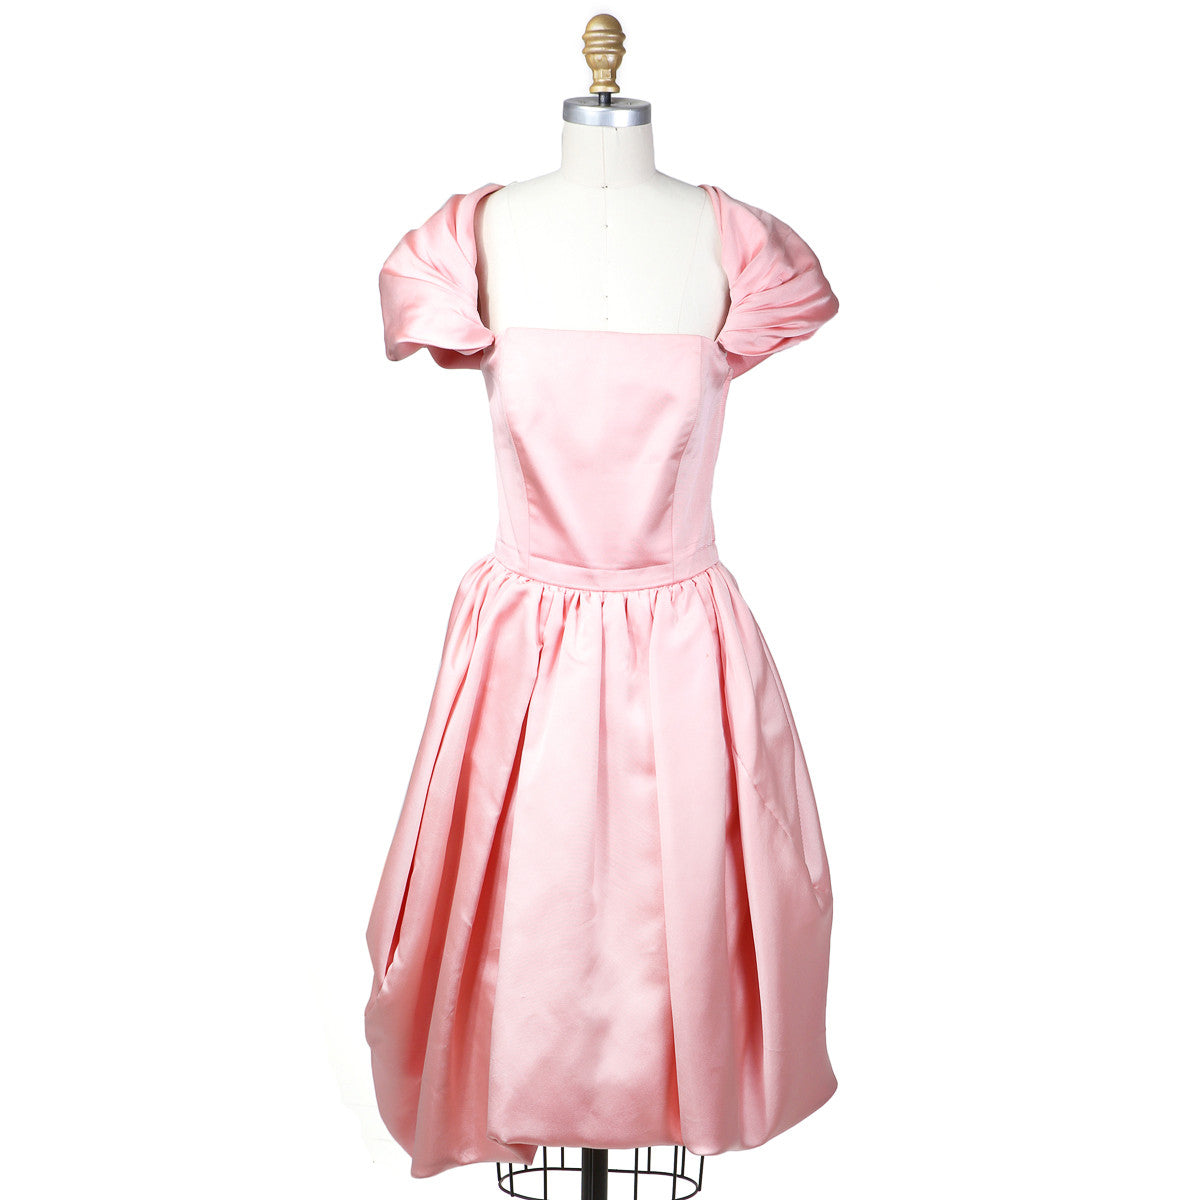 BUBBLE GUM PINK BABY DOLL DRESS with Cap Sleeves circa 1980s